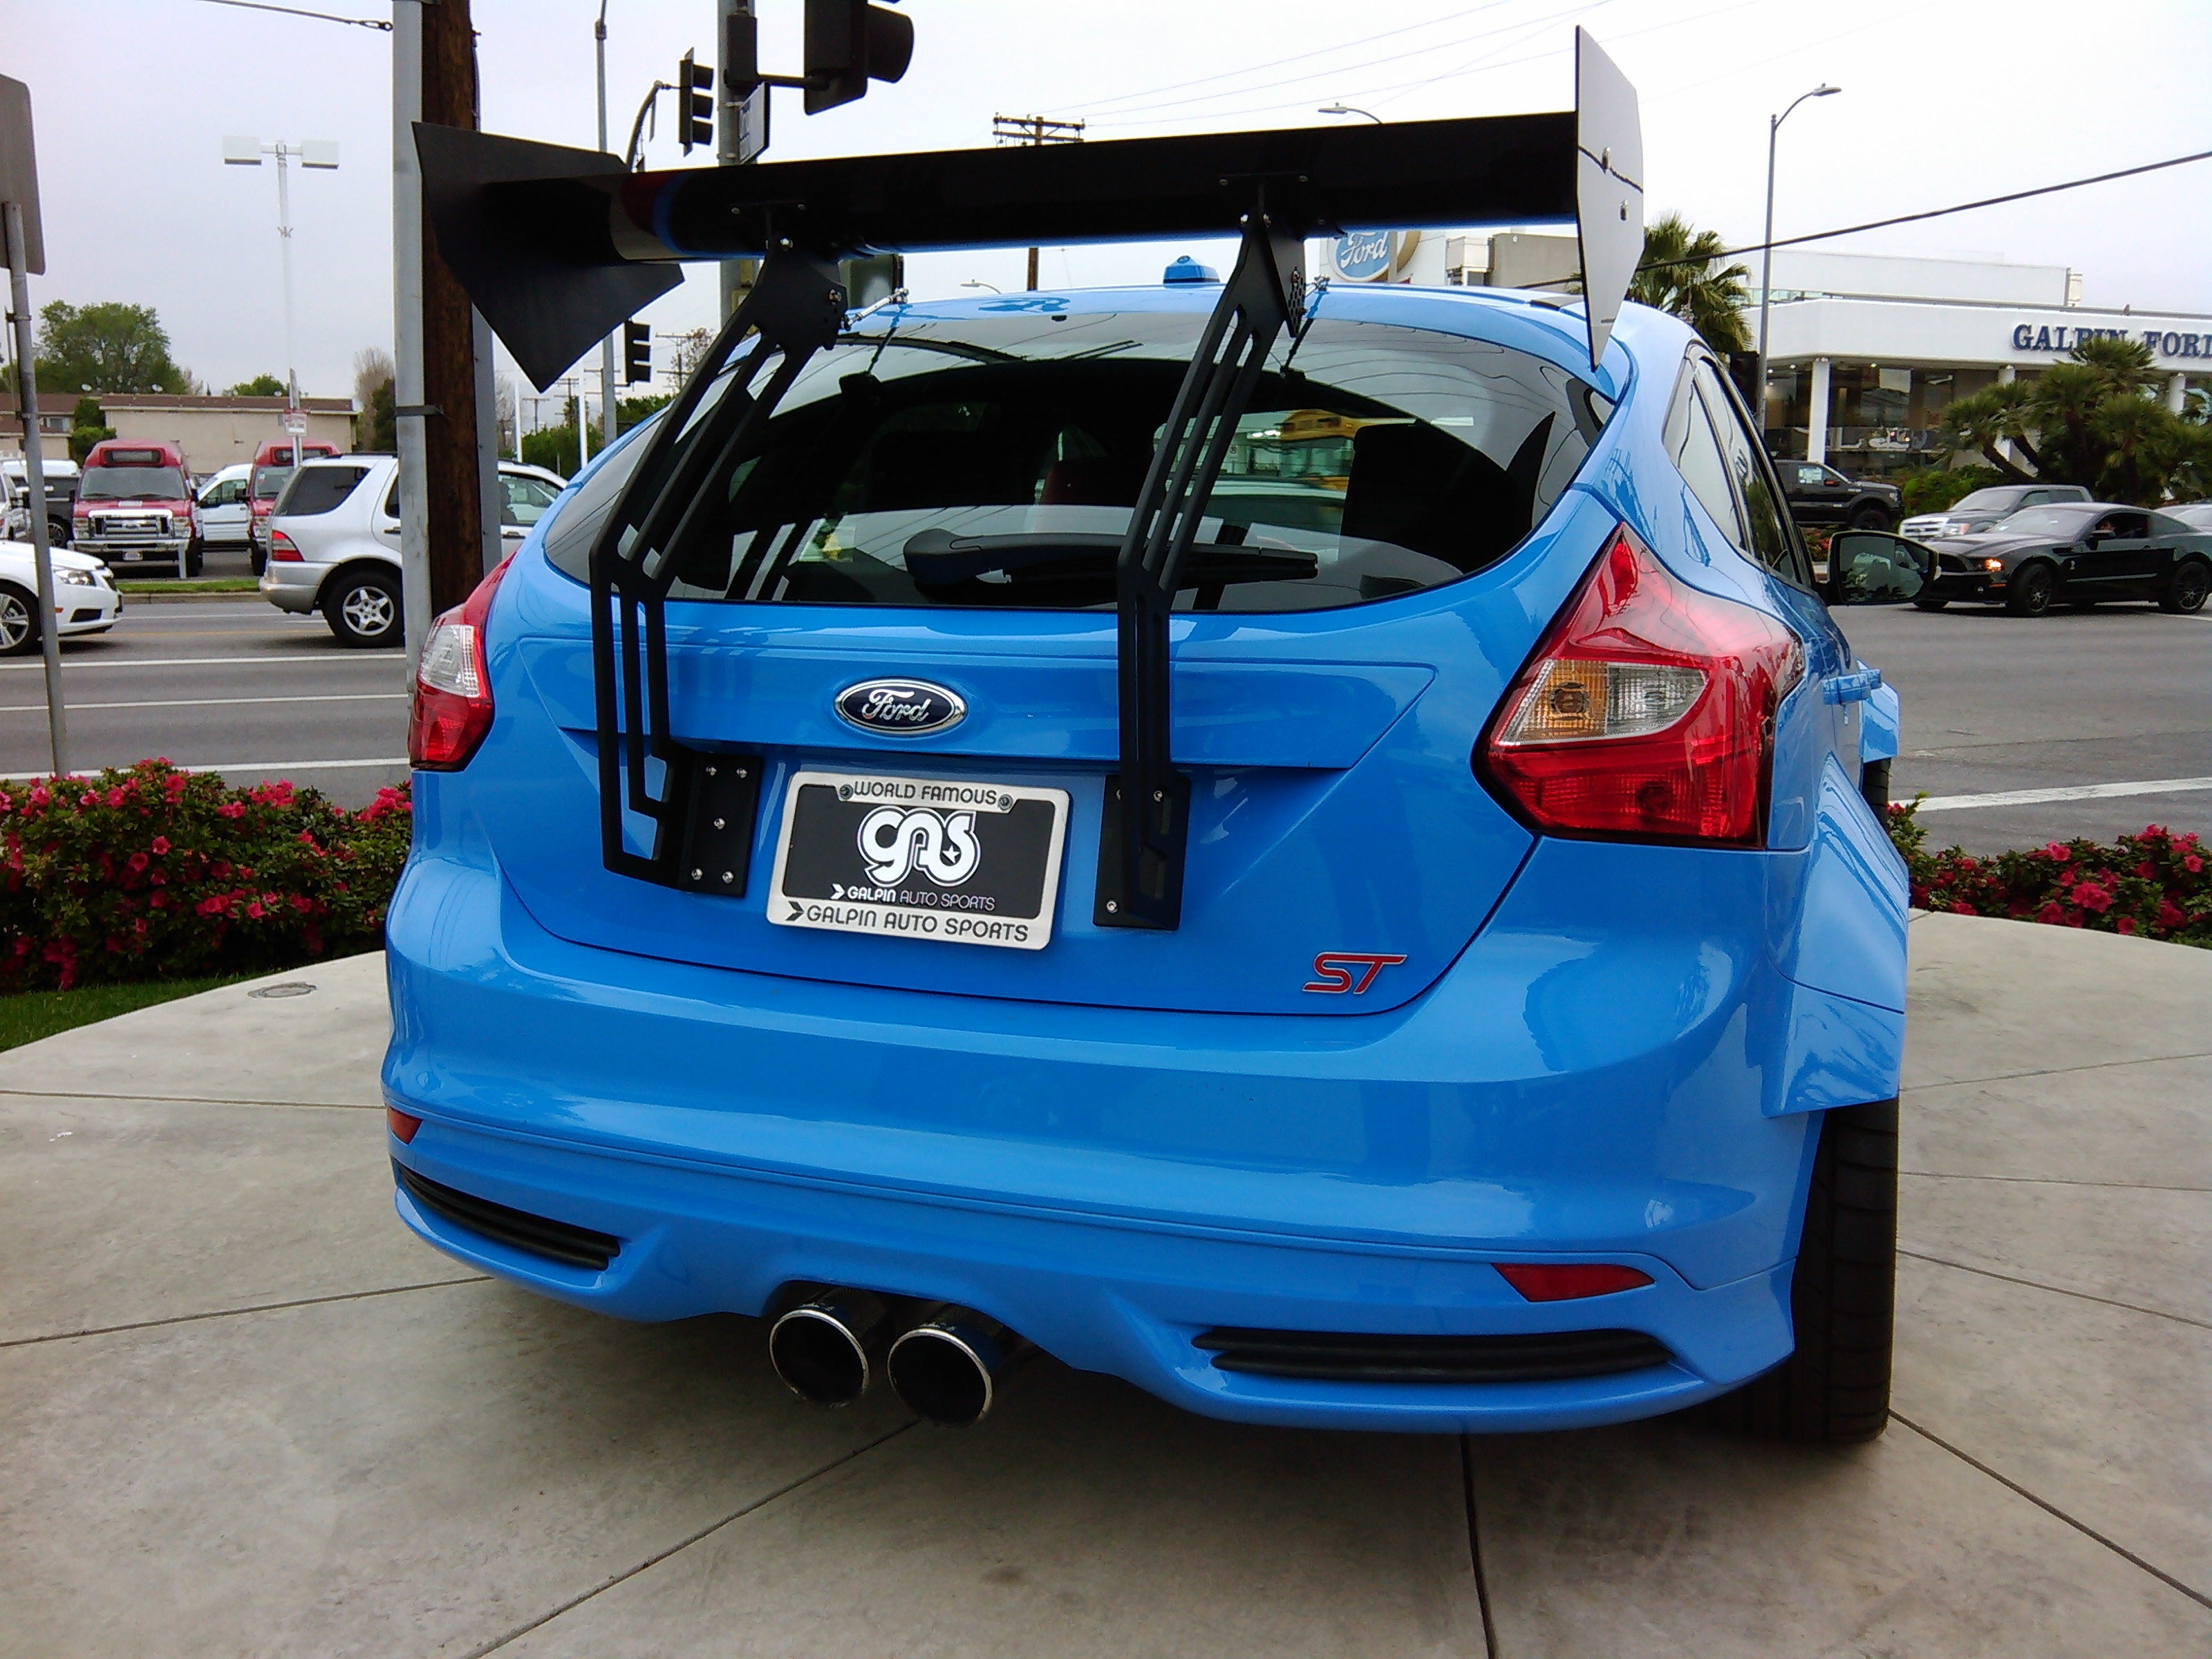 2013 Ford Focus Se Hatchback >> Focus ST Wing Riser from ***Boomba Racing*** and Edgeautosport.com!!!! Who wants one? - Page 12